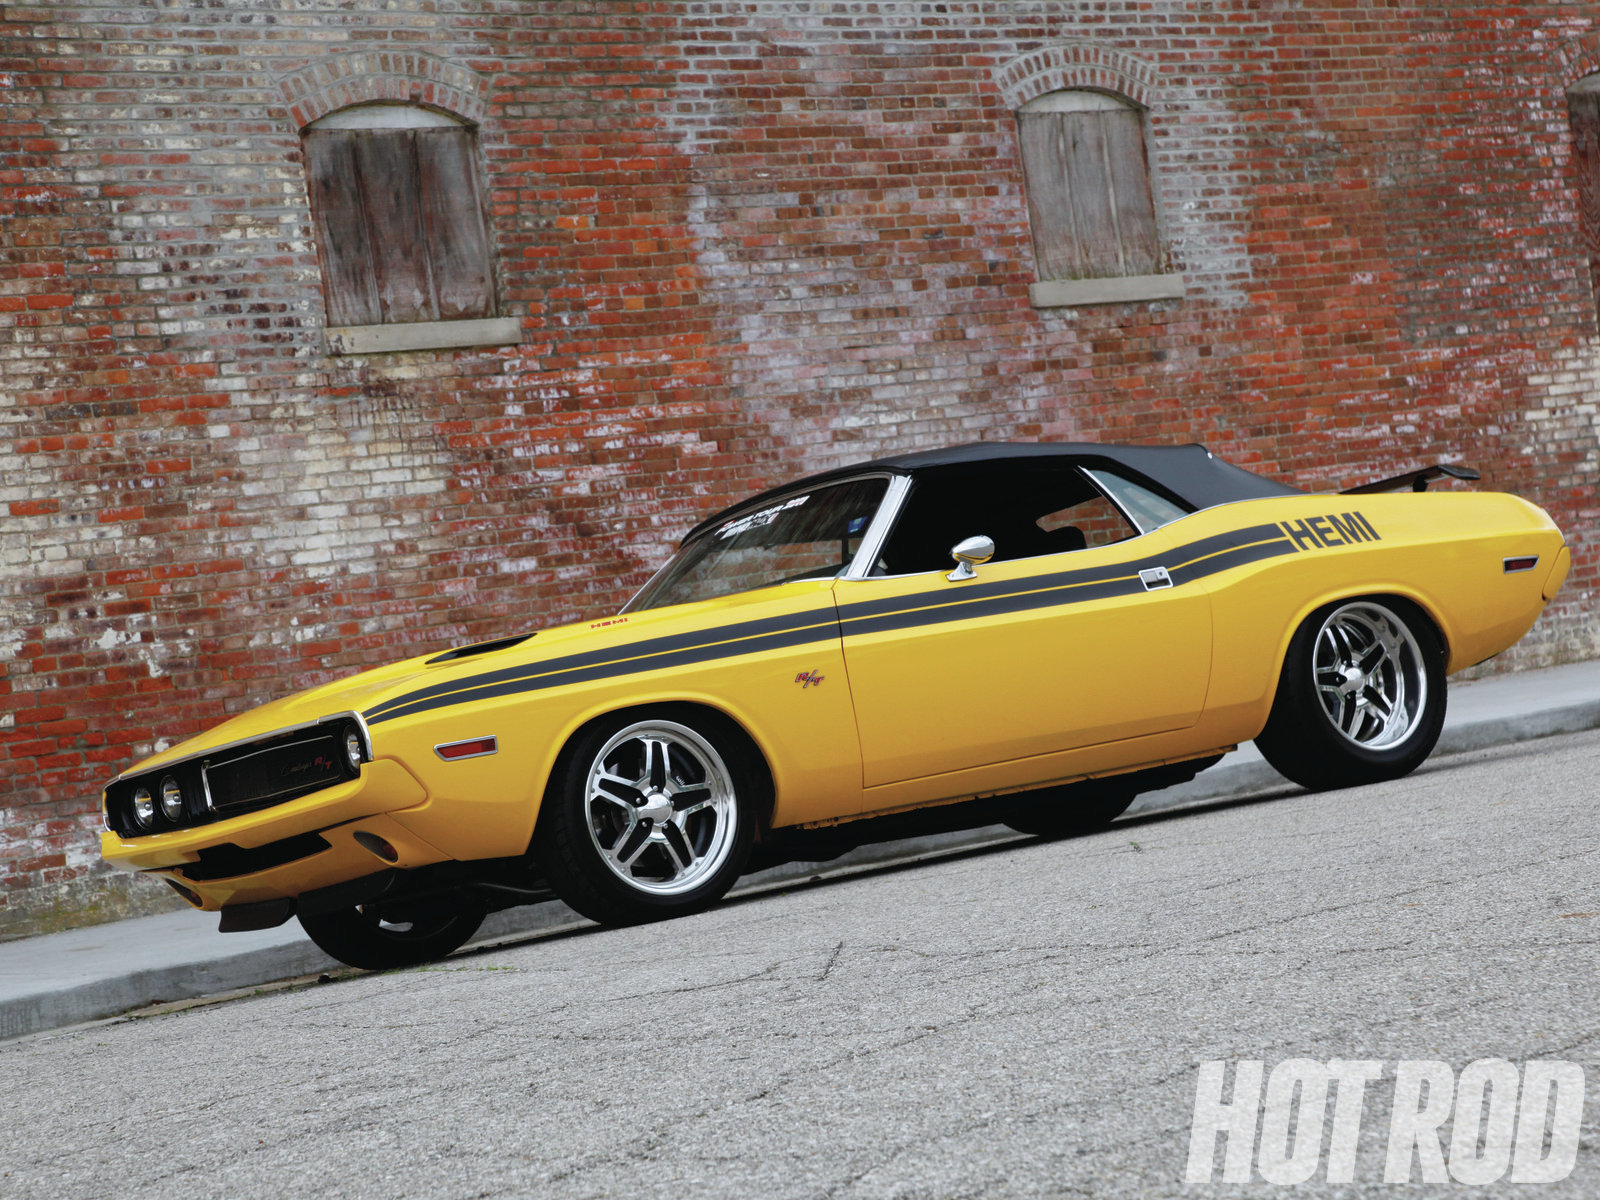 1970 dodge challenger muscle classic hot rod rods. Black Bedroom Furniture Sets. Home Design Ideas